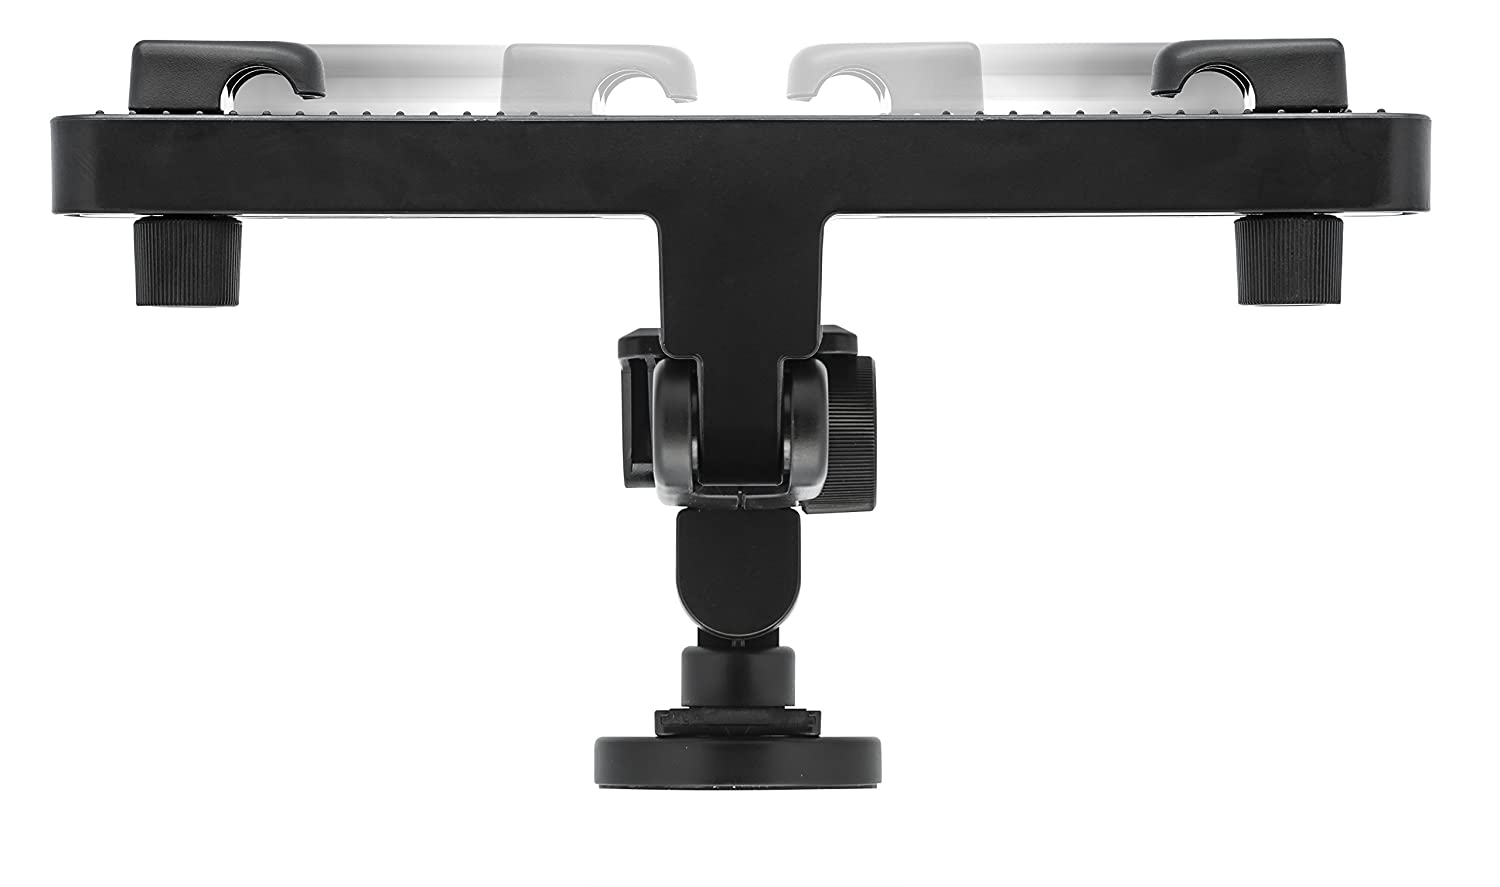 BT1-730-2 Bracketron Universal Tablet Headrest Magnet Mount for Tablet Phablet-style iPad Samsung Galaxy Tab S4 S3 Microsoft Surface Pro Asus ZenPad 3S 10 Lenovo IdeaPad Huawei MediaPad  Fire